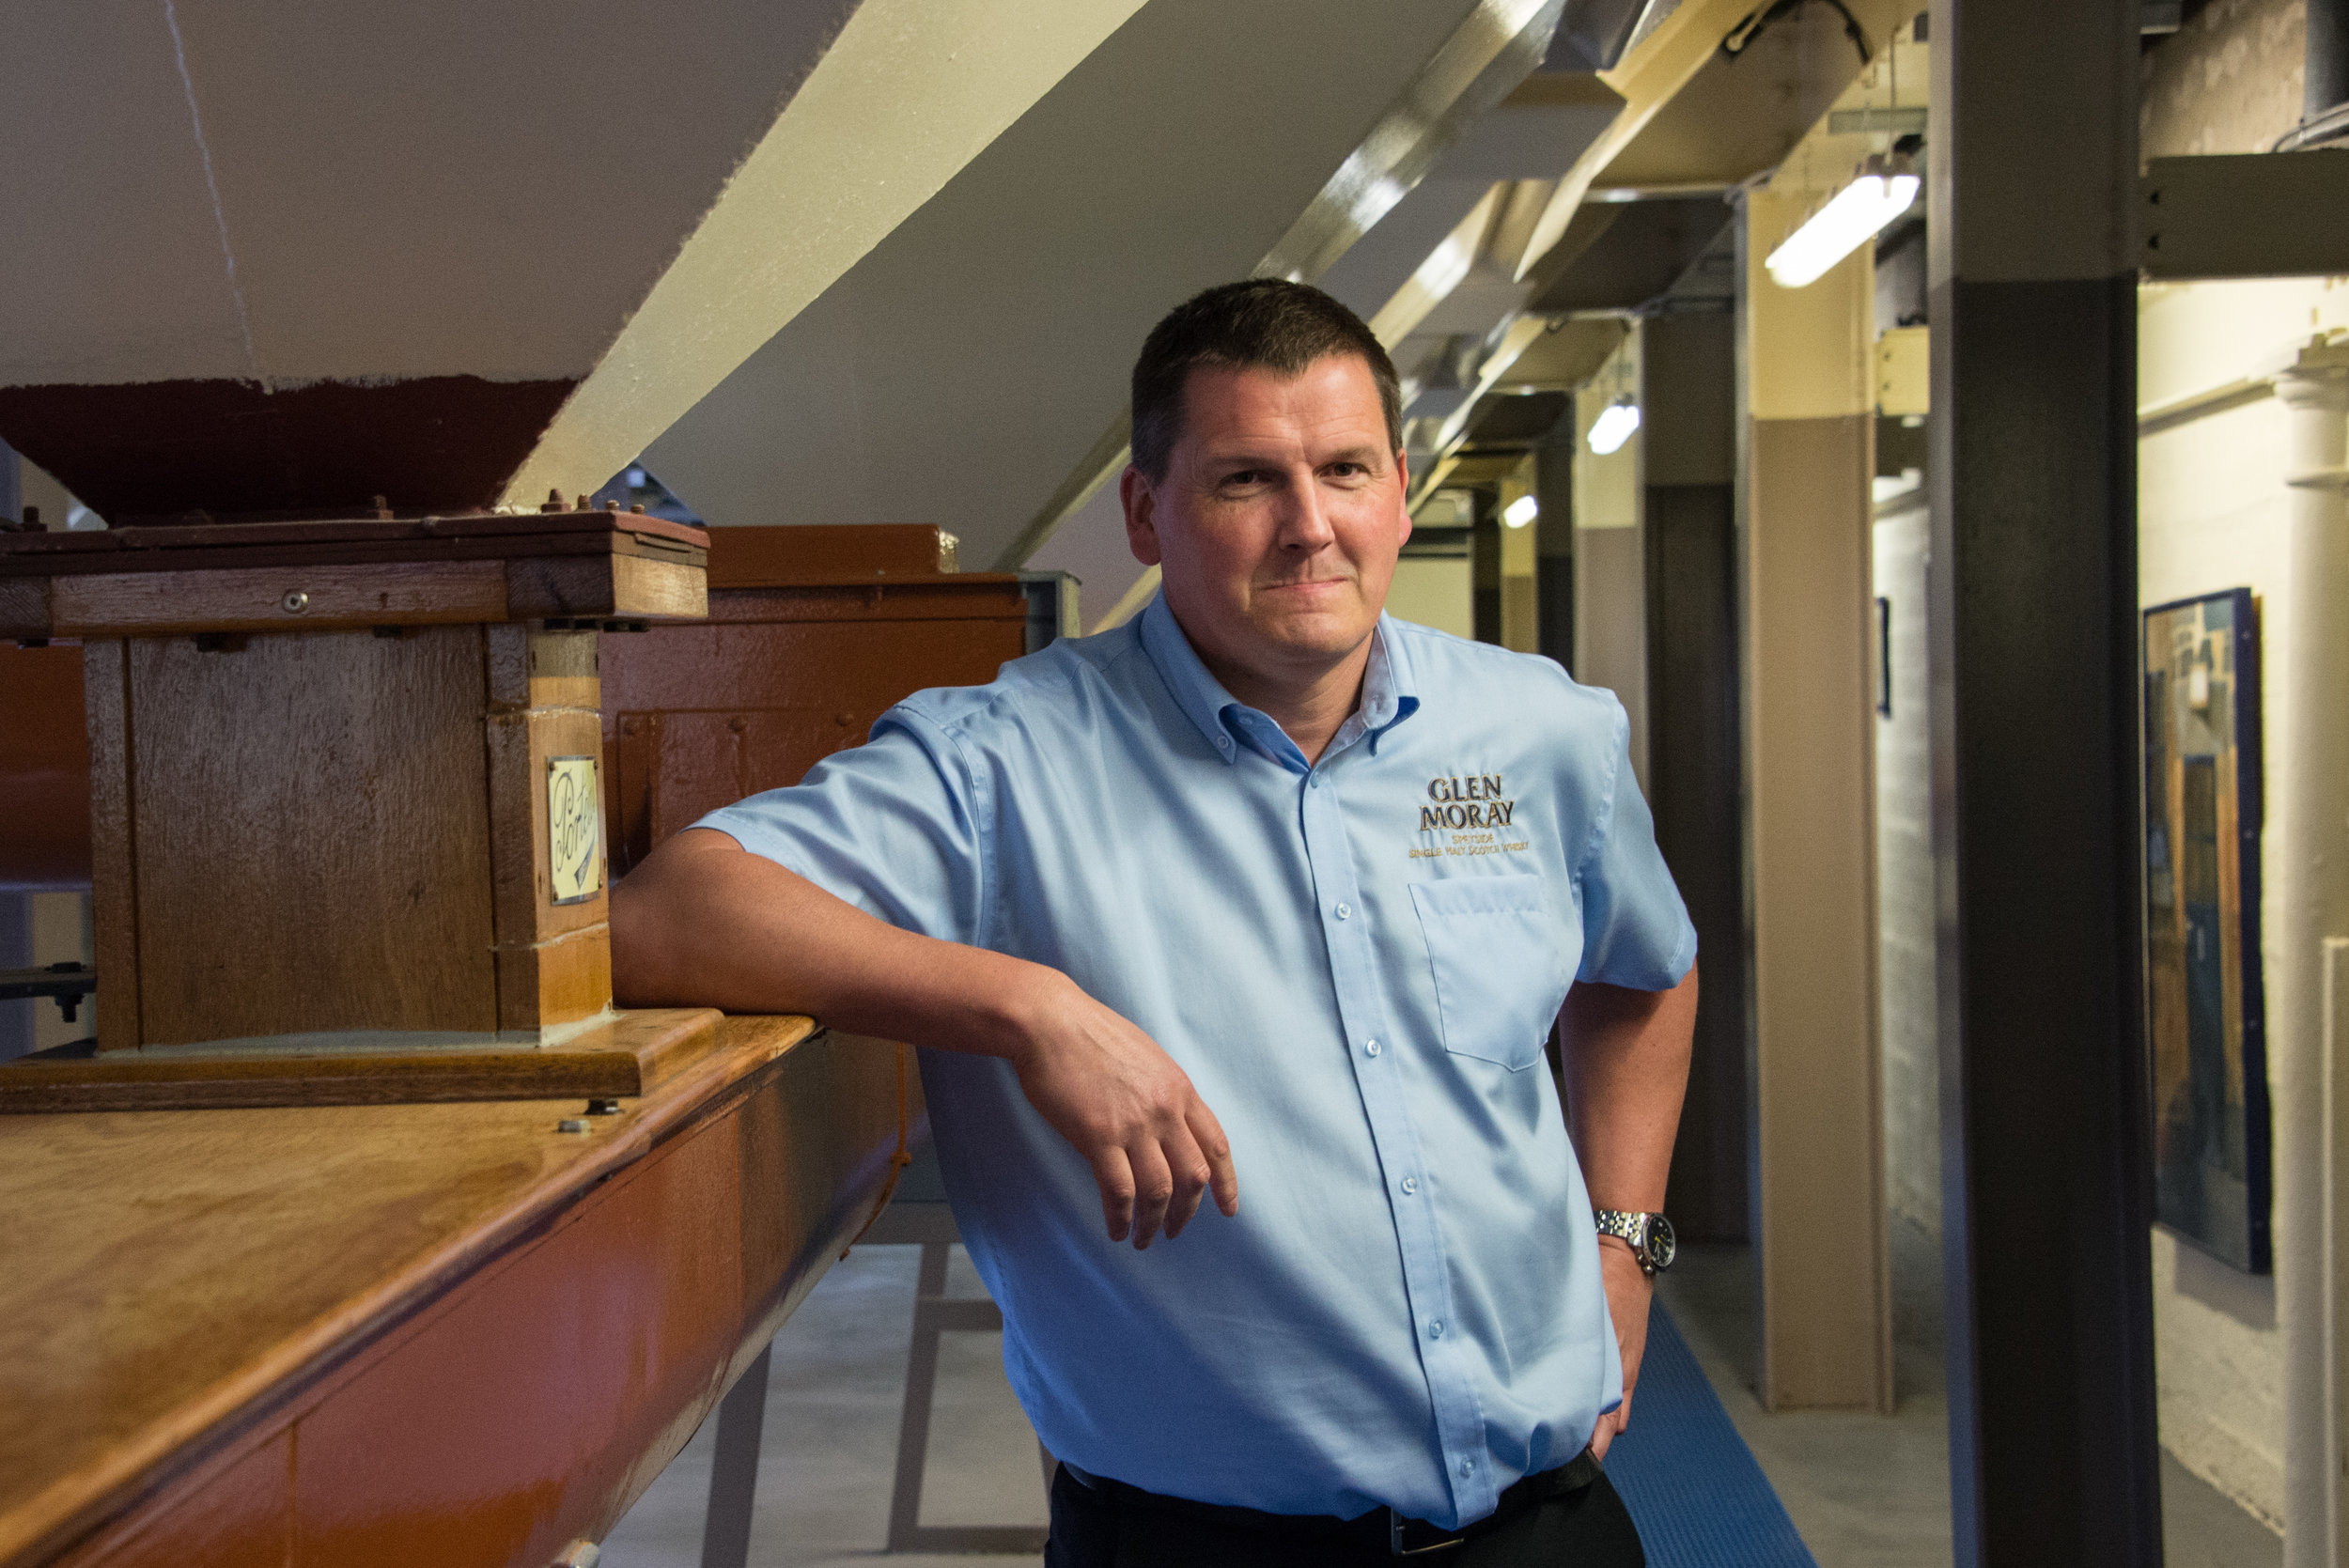 Glen Moray's Master Distiller Graham Coull stands in front of malt bins, which hold malted barley and date back to 1963.